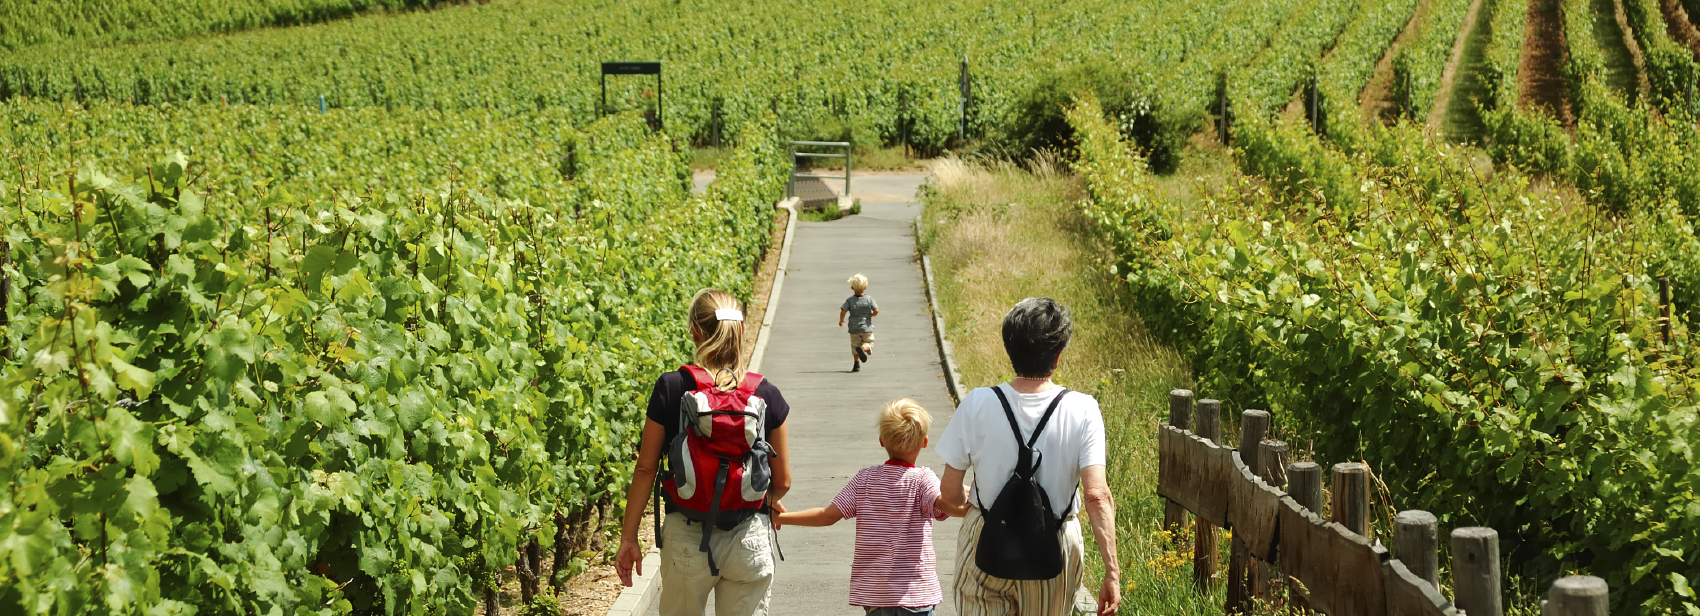 Visit the vineyard with your family during a wine day tour from Paris